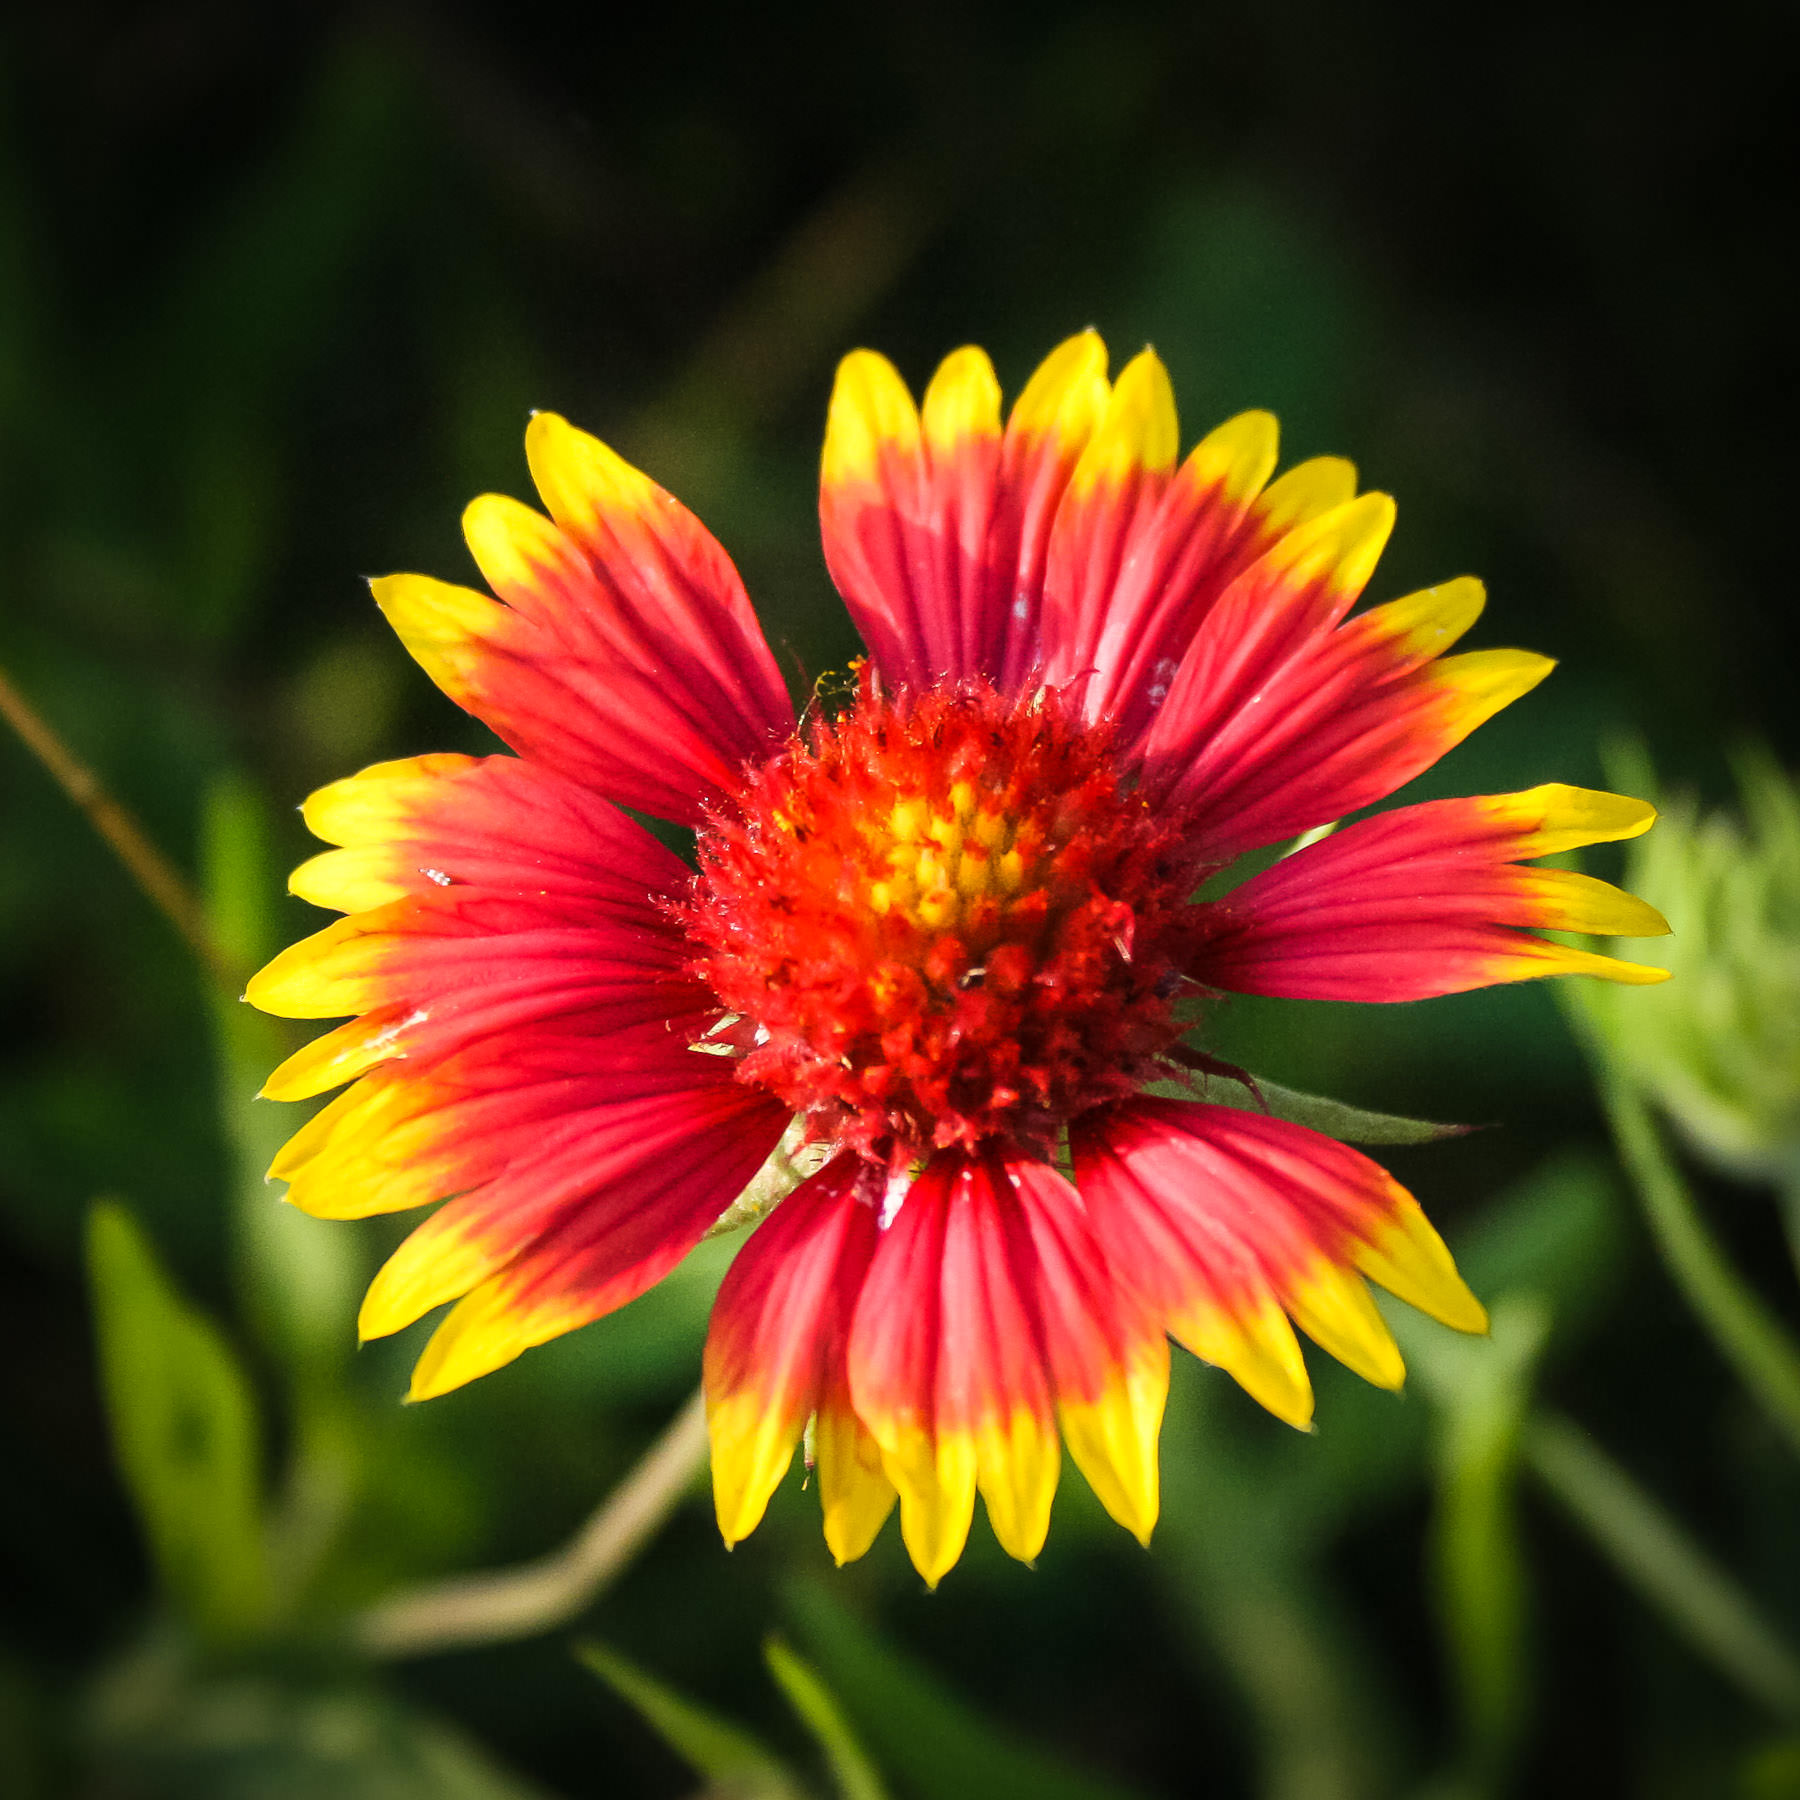 An Indian Blanket, or Gaillardia pulchella, found along the shore of Dallas' White Rock Lake.